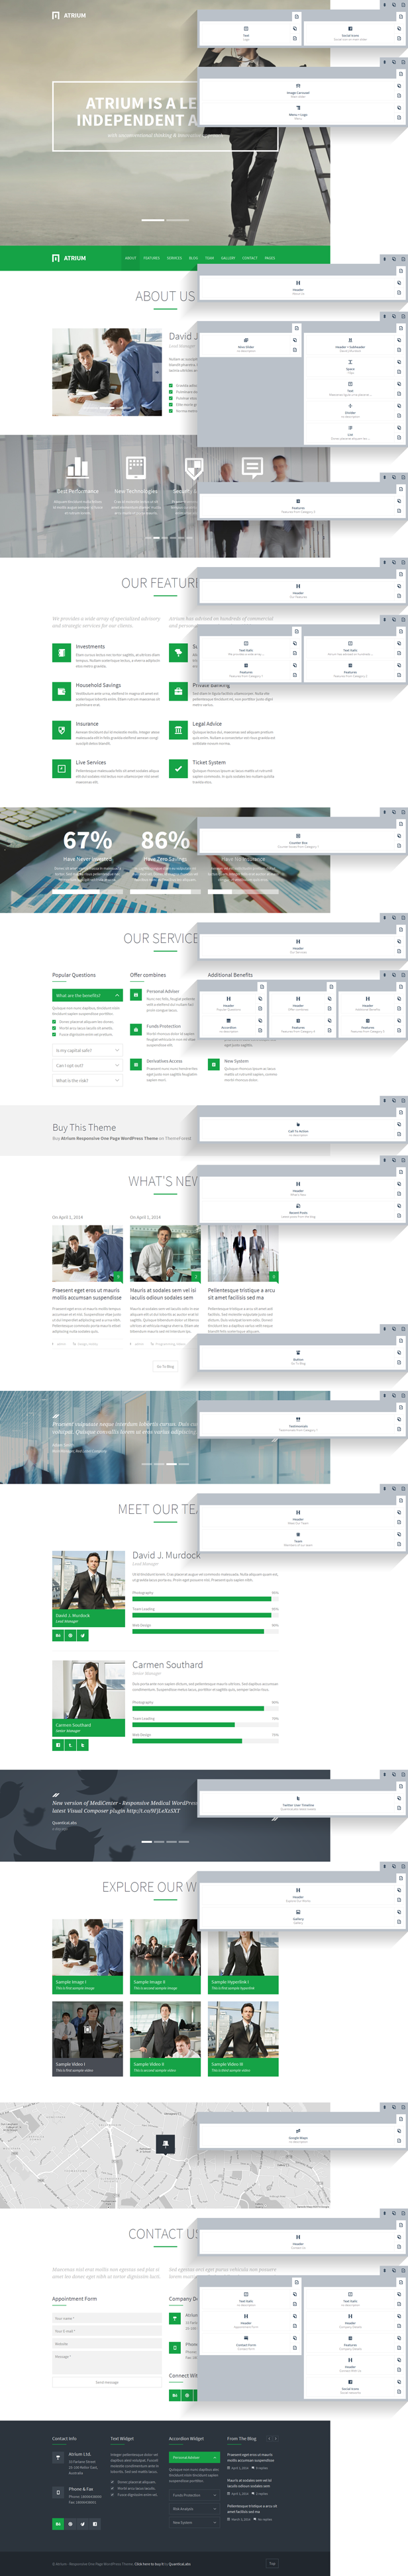 Atrium - Finance Consulting Advisor WordPress Theme - 5